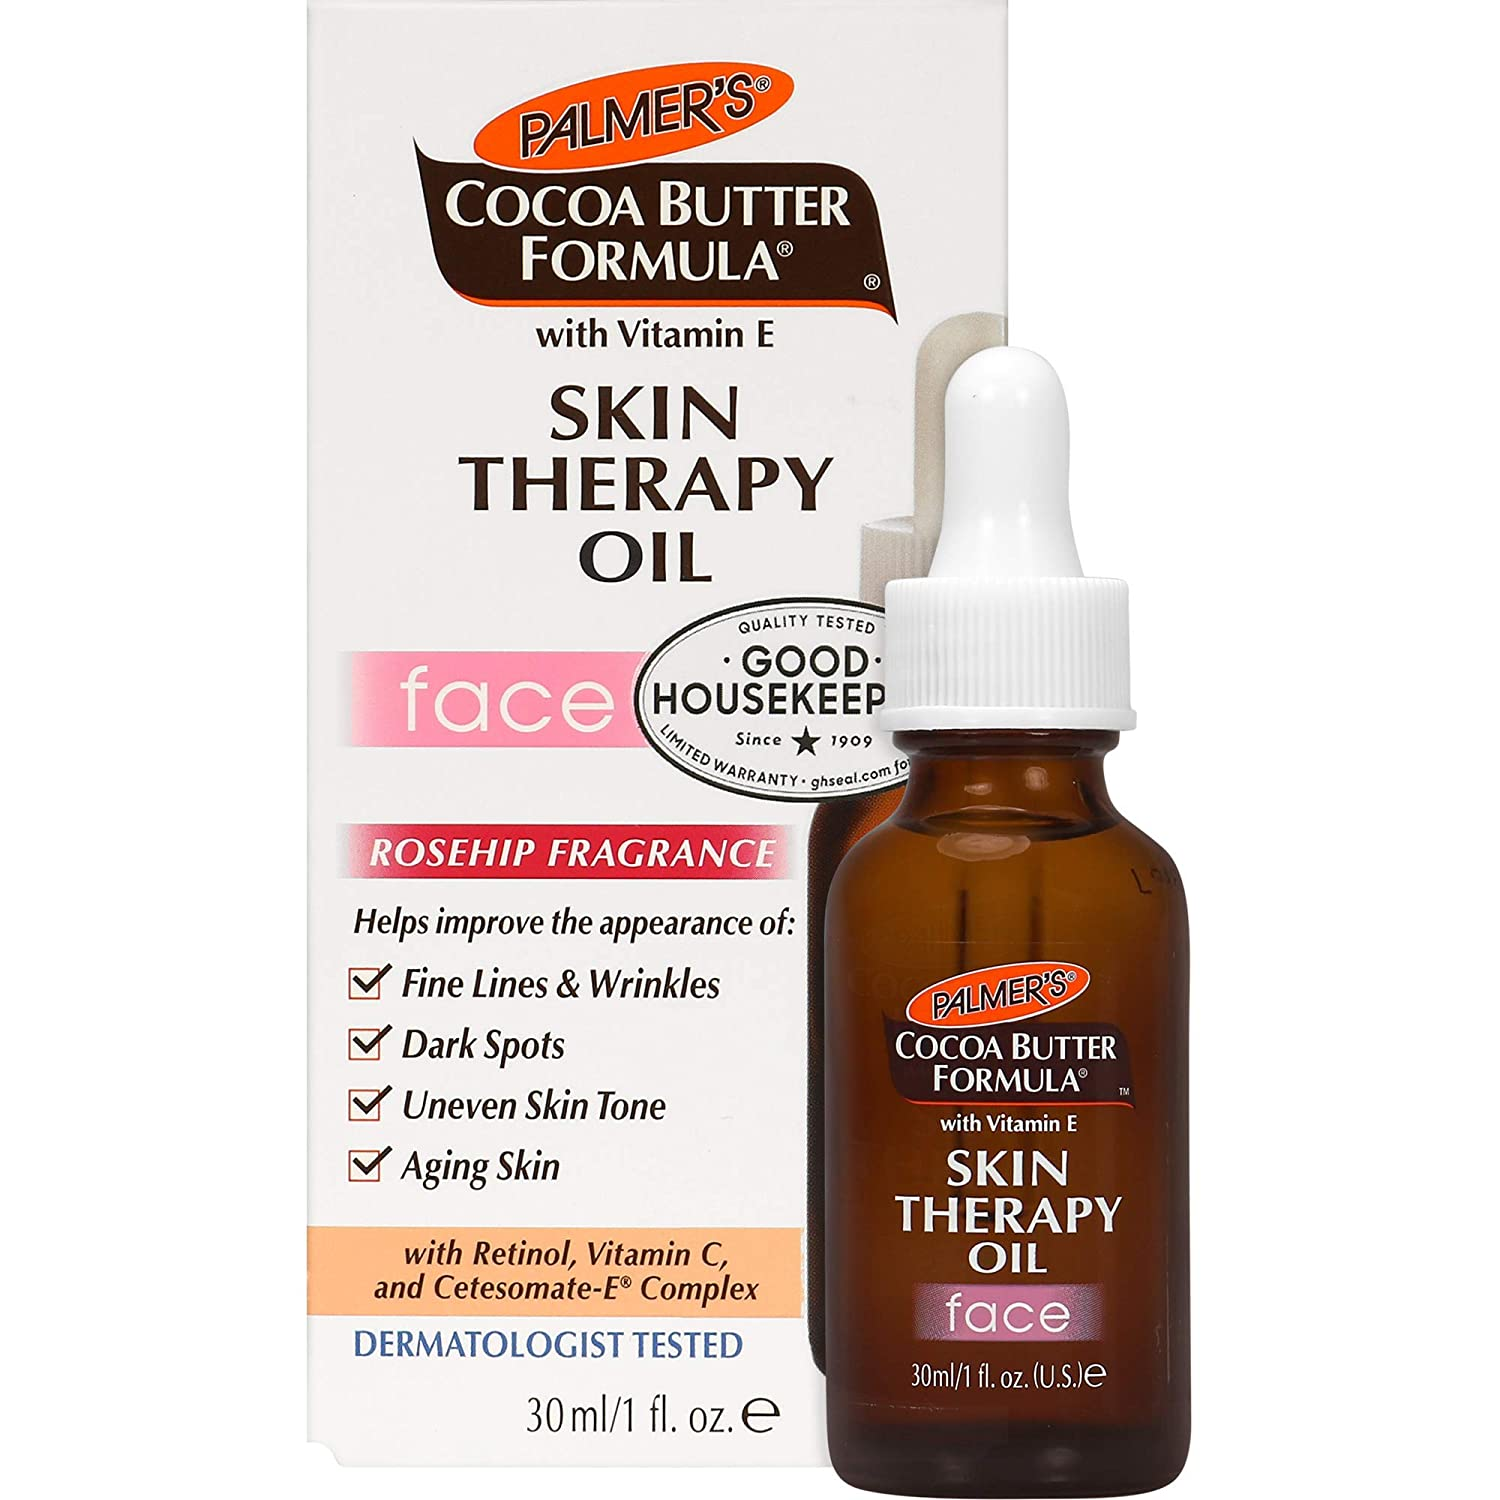 Palmer's Cocoa Butter Formula Moisturizing Skin Therapy Oil for Face with Vitamin E, Rosehip Fragrance, 1 Ounce: Beauty